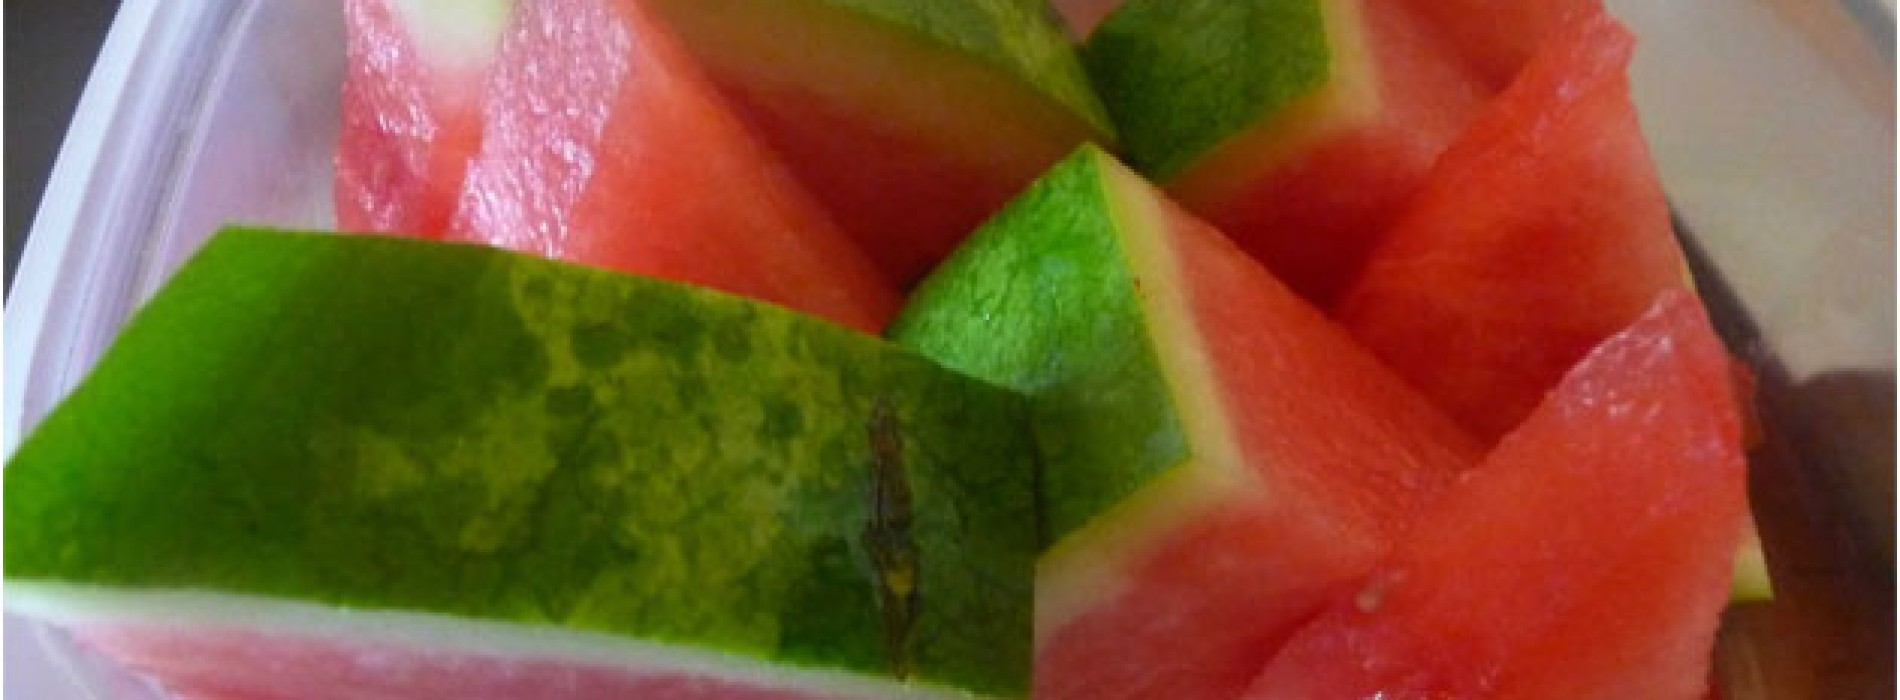 What's So Great About Watermelon